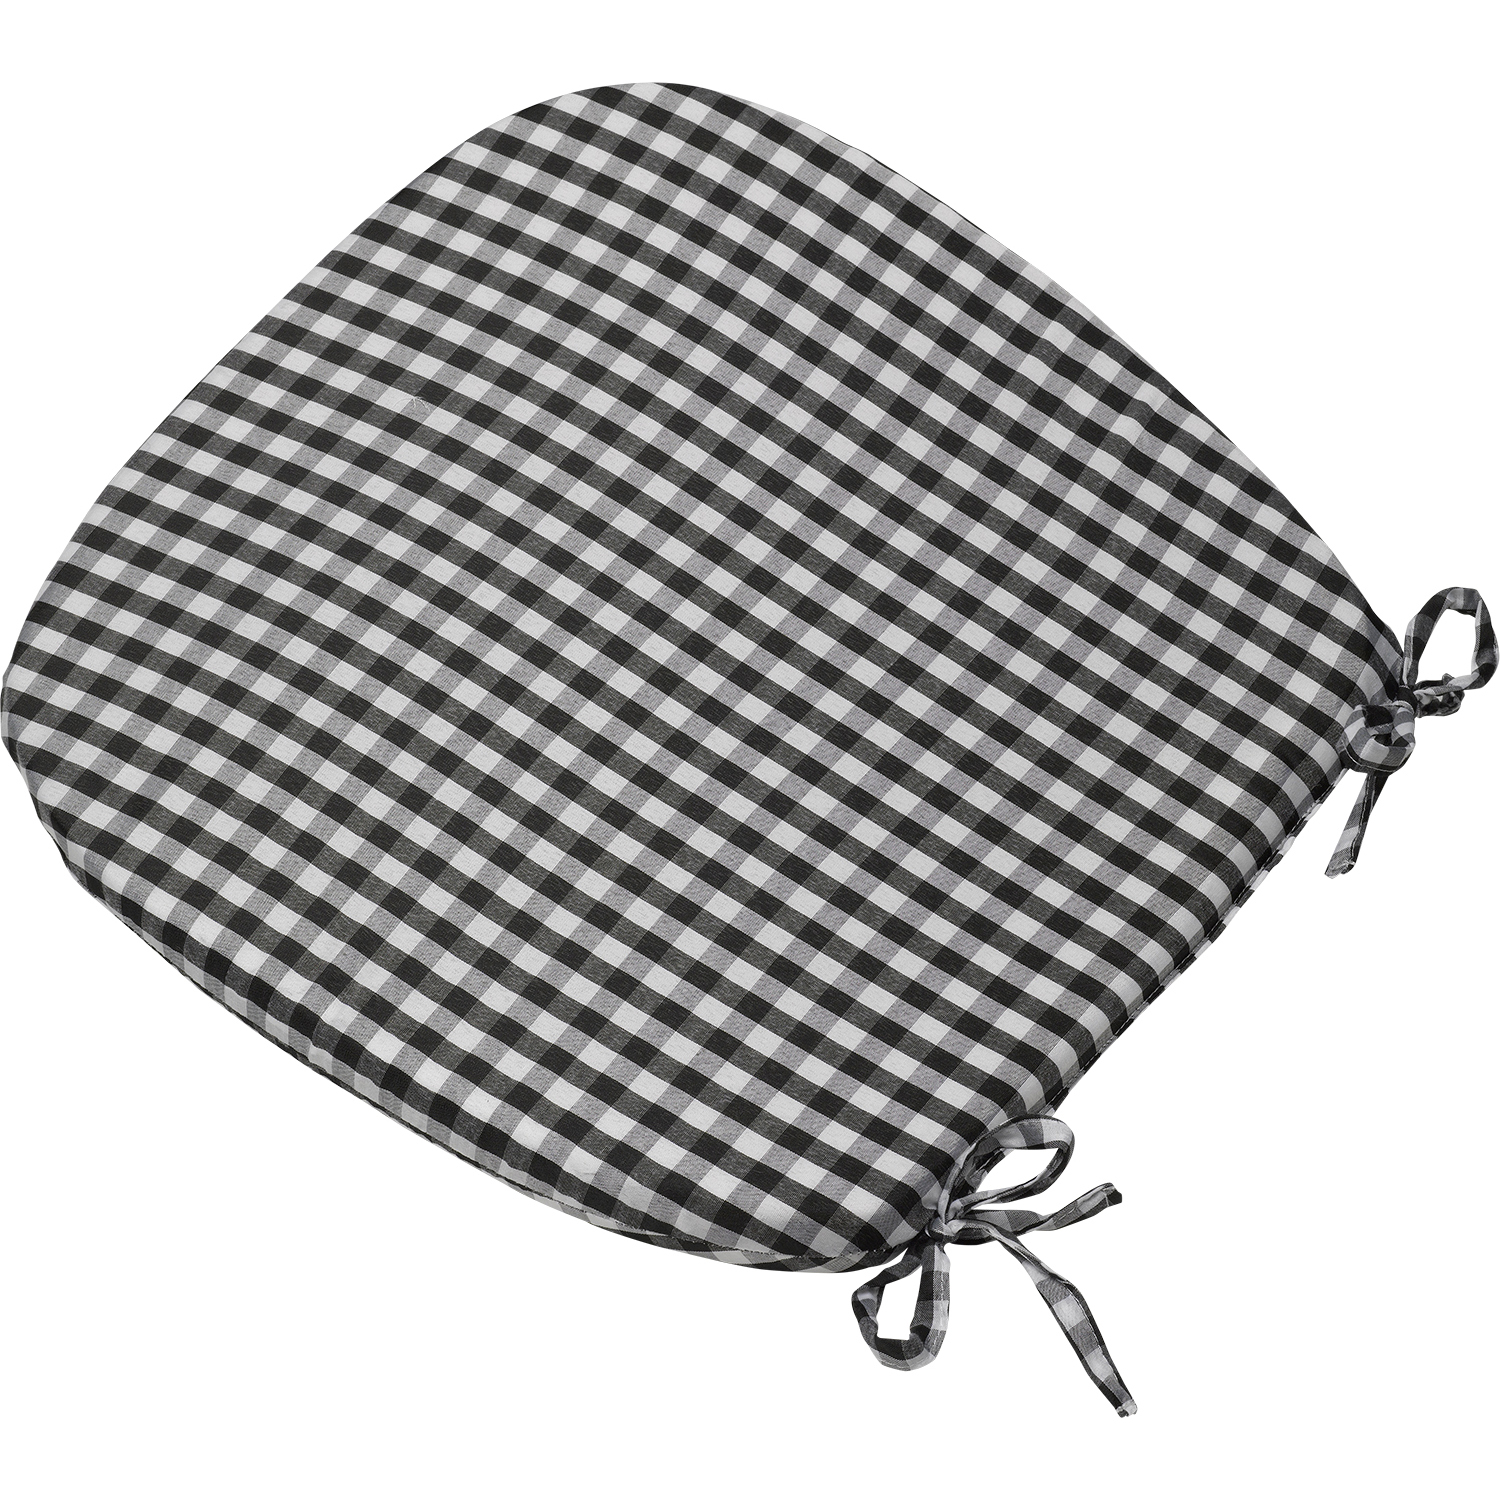 Gingham Check Tie On Seat Pad 16 034 Gingham Check Tie On Seat Pad 16  x 16  Kitchen Outdoor Dining  . Round Seat Cushions For Dining Room Chairs. Home Design Ideas